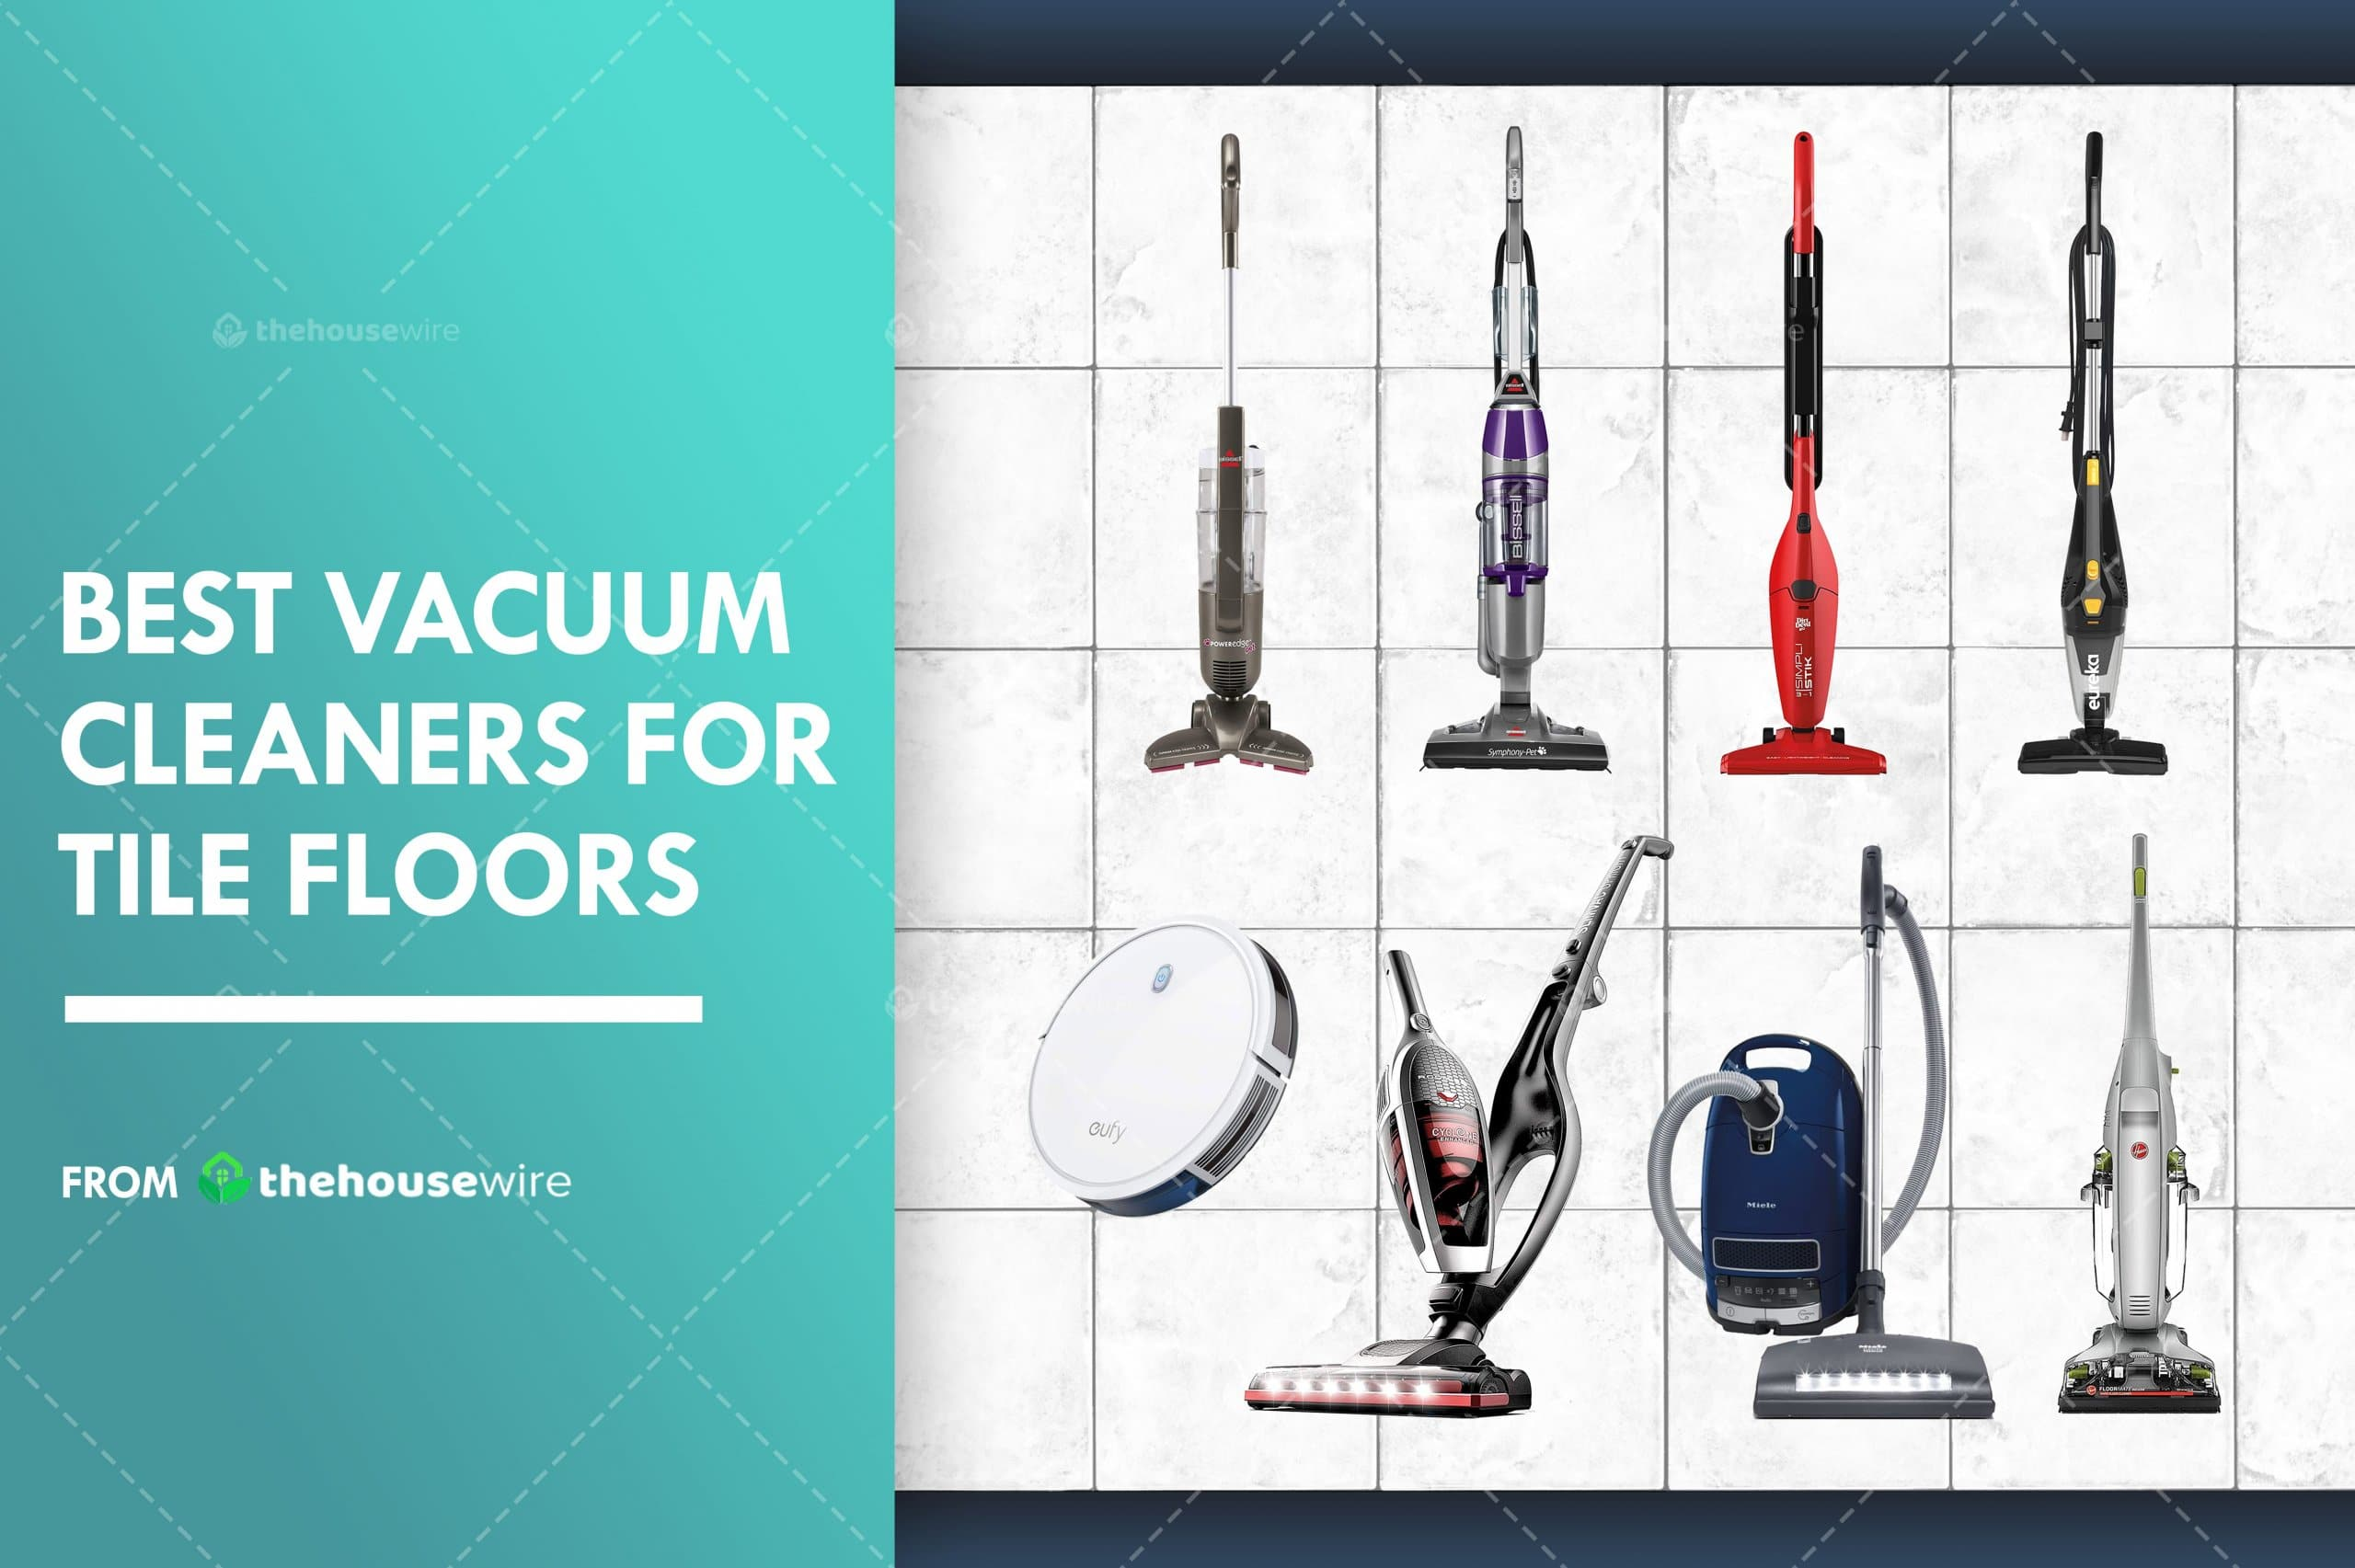 The 8 Best Vacuum Cleaners For Tile Floors of 2021